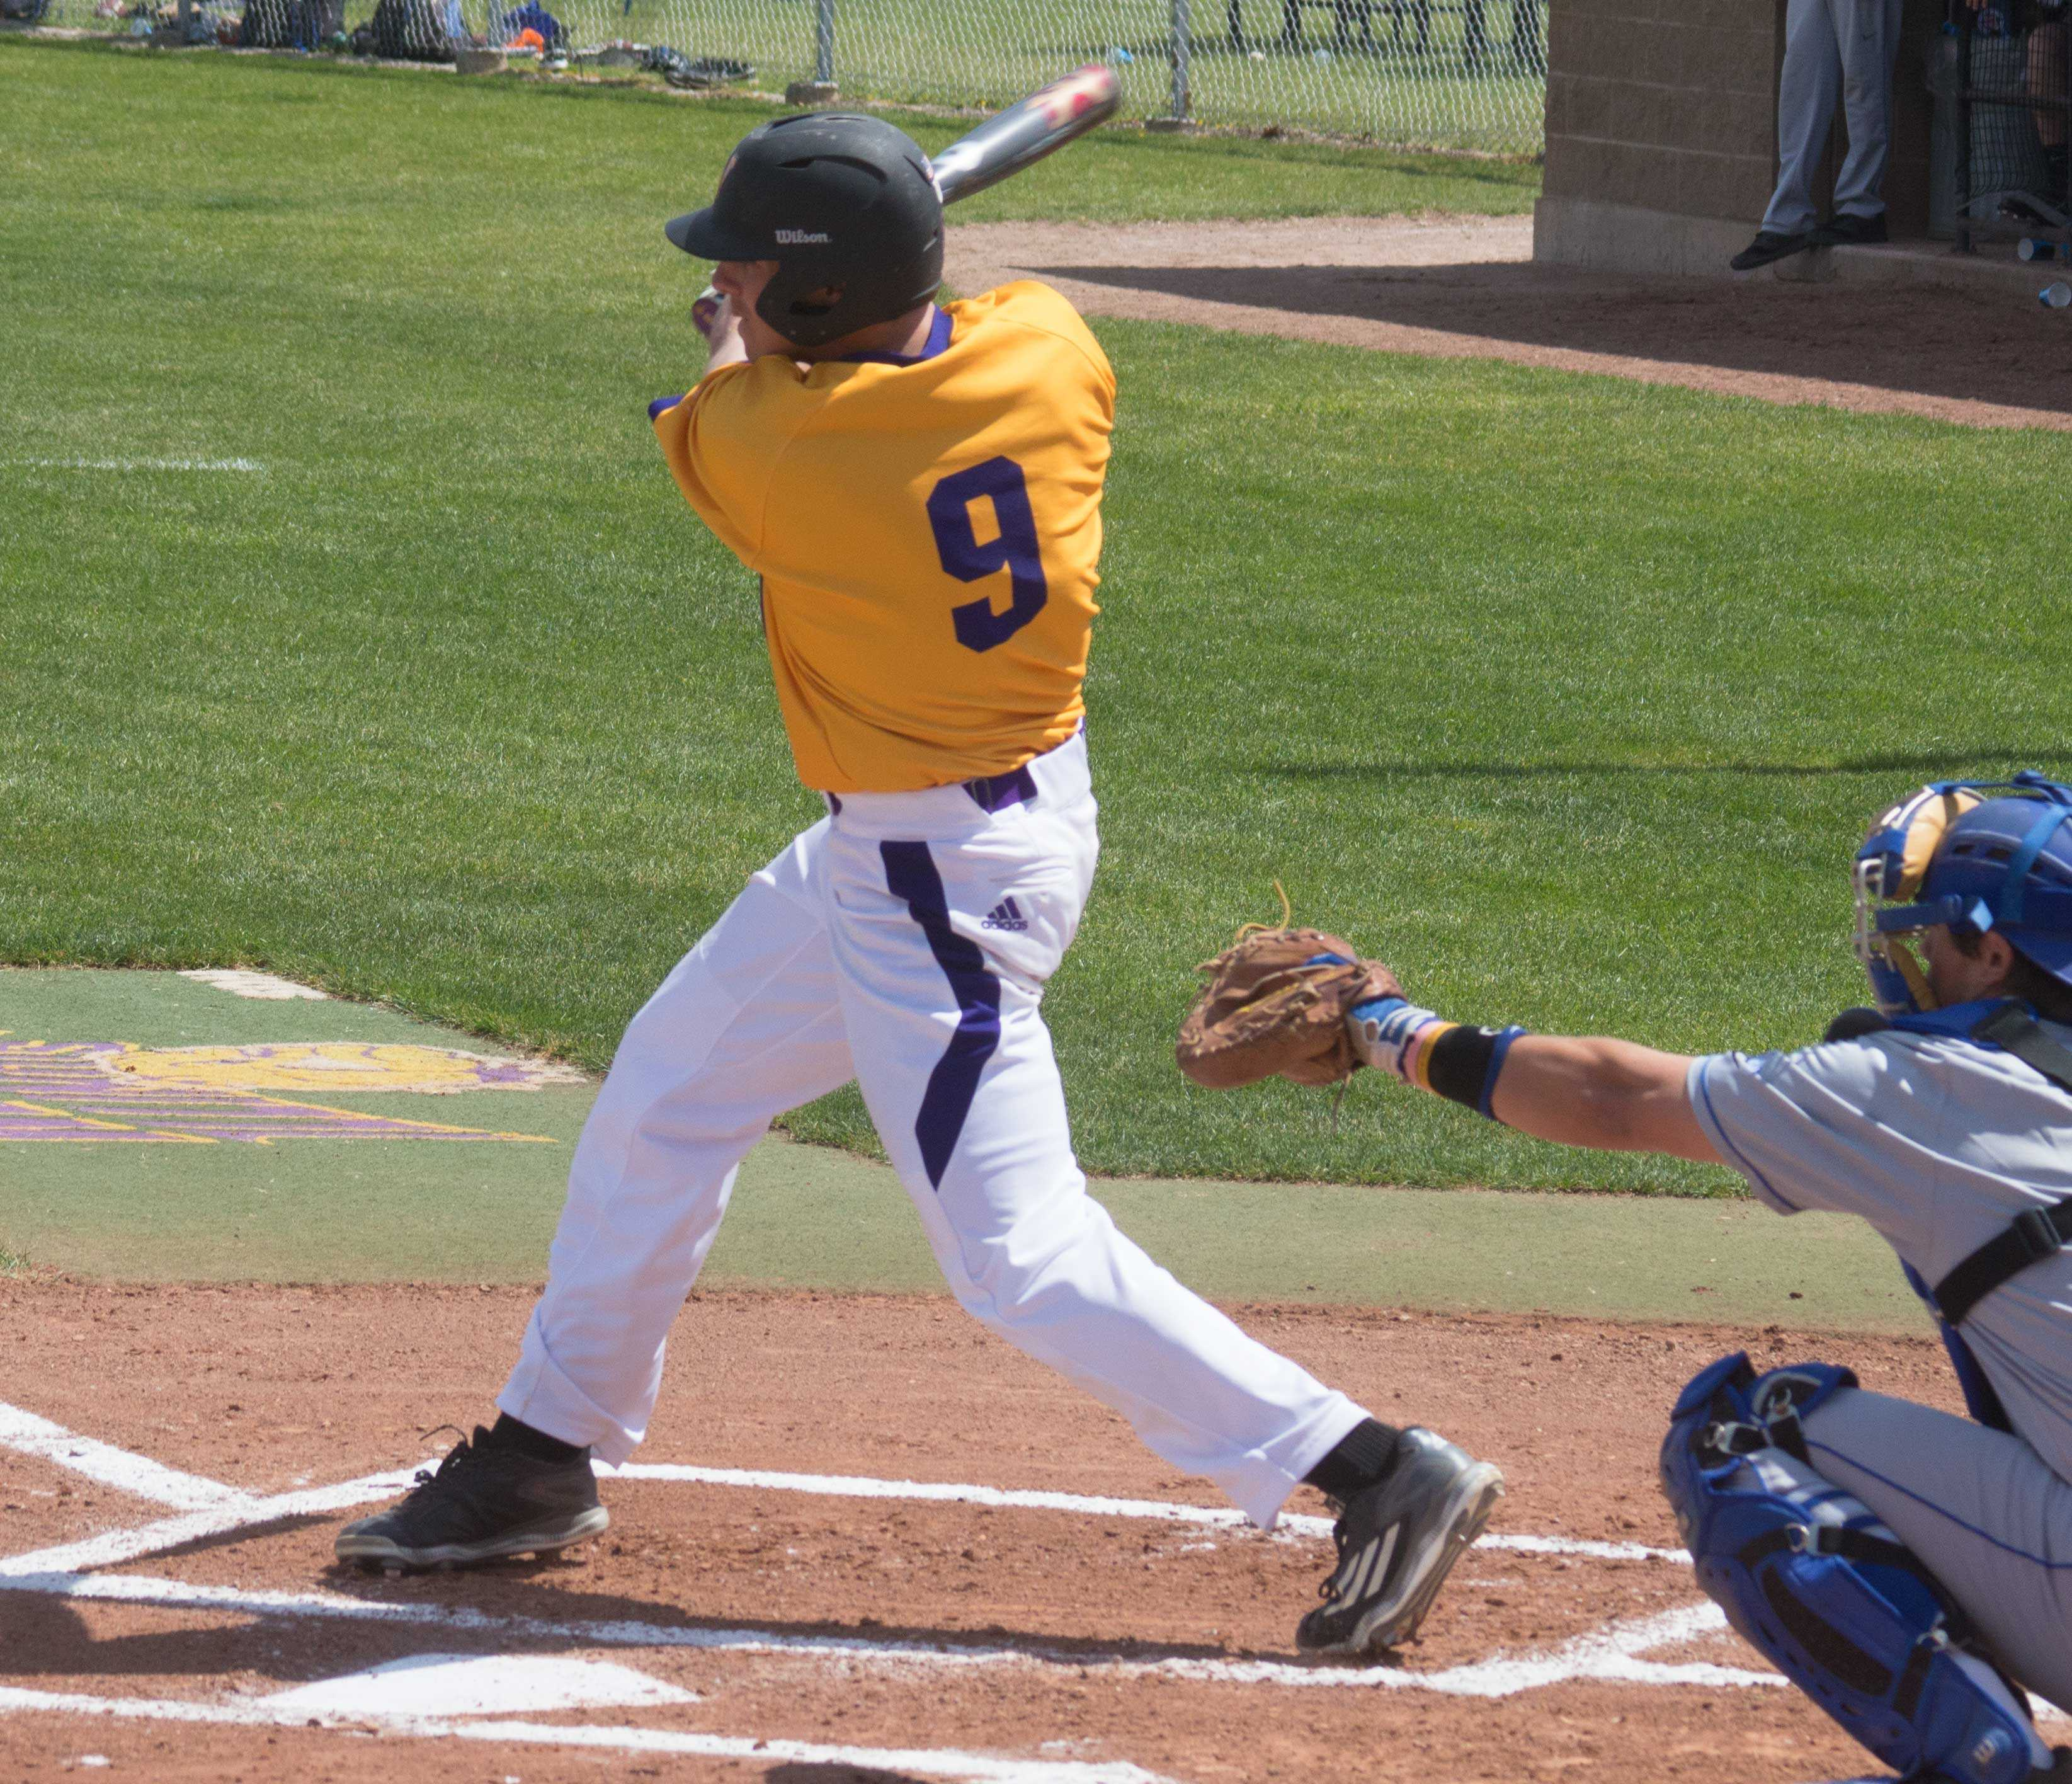 Roman Visintine has been consistent in his role as the leadoff hitter for the Leathernecks in 2016.